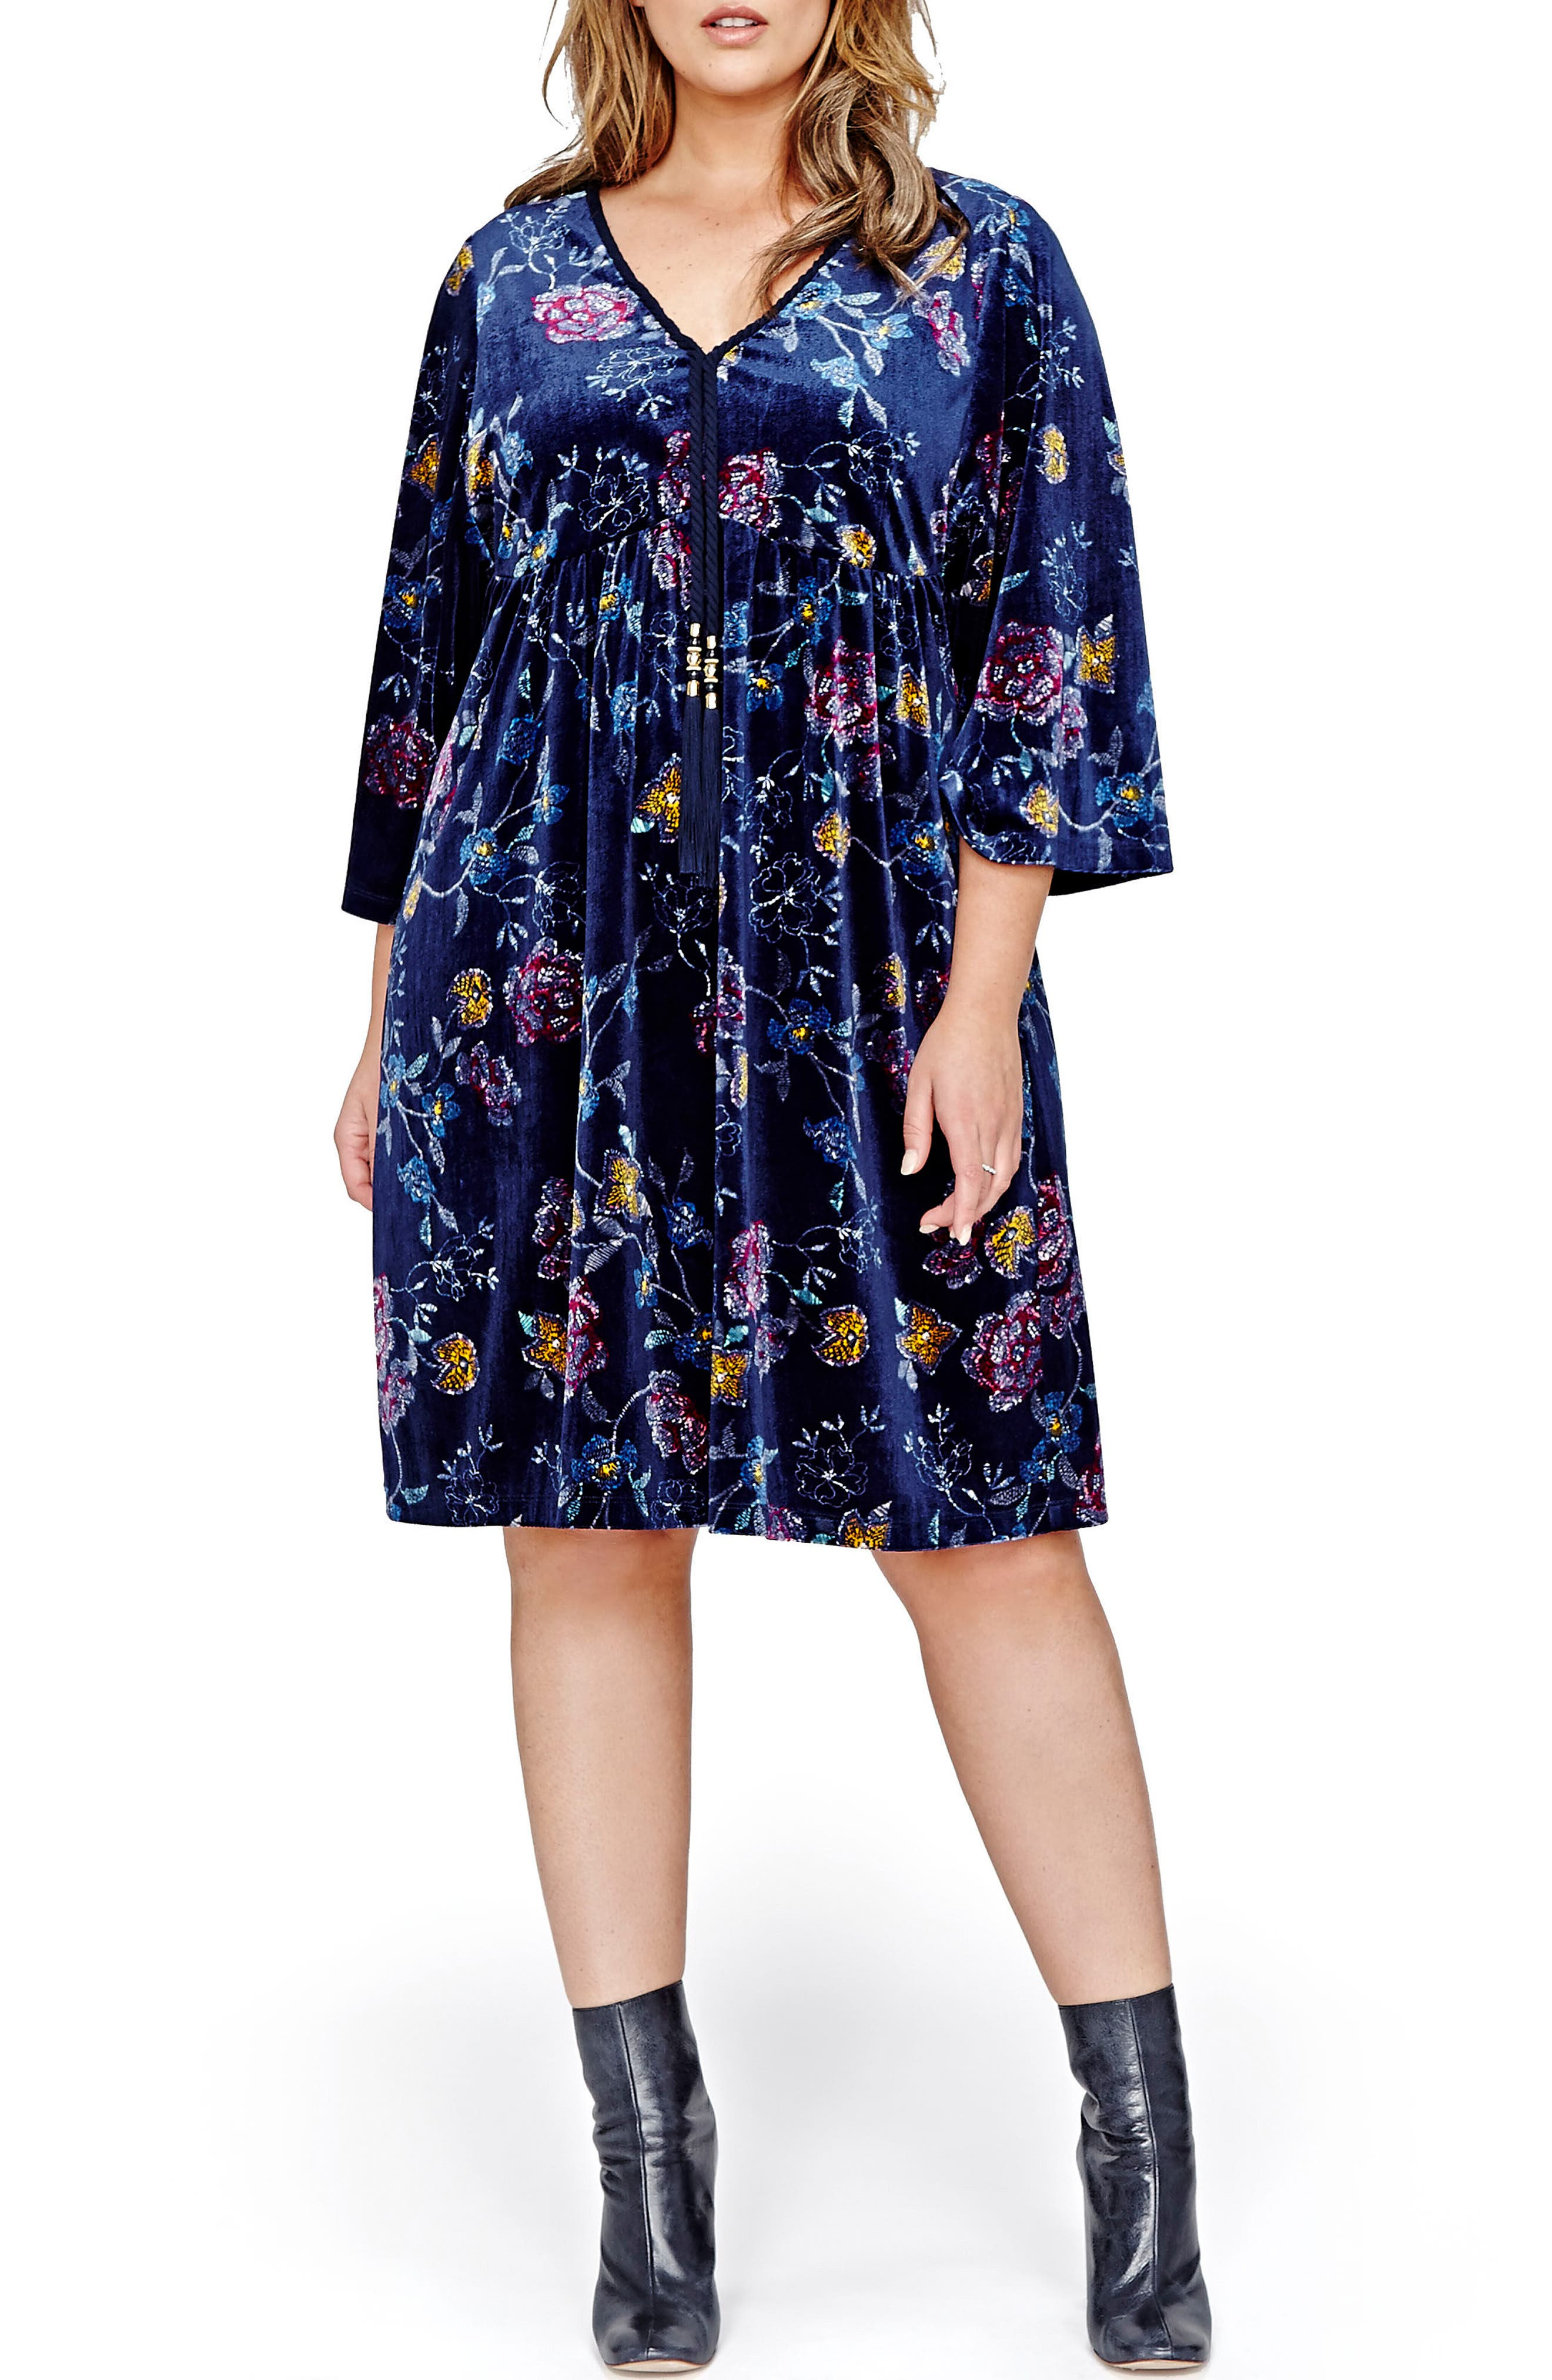 ADDITION ELLE LOVE AND LEGEND Floral Velvet Kimono Dress (Plus Size)